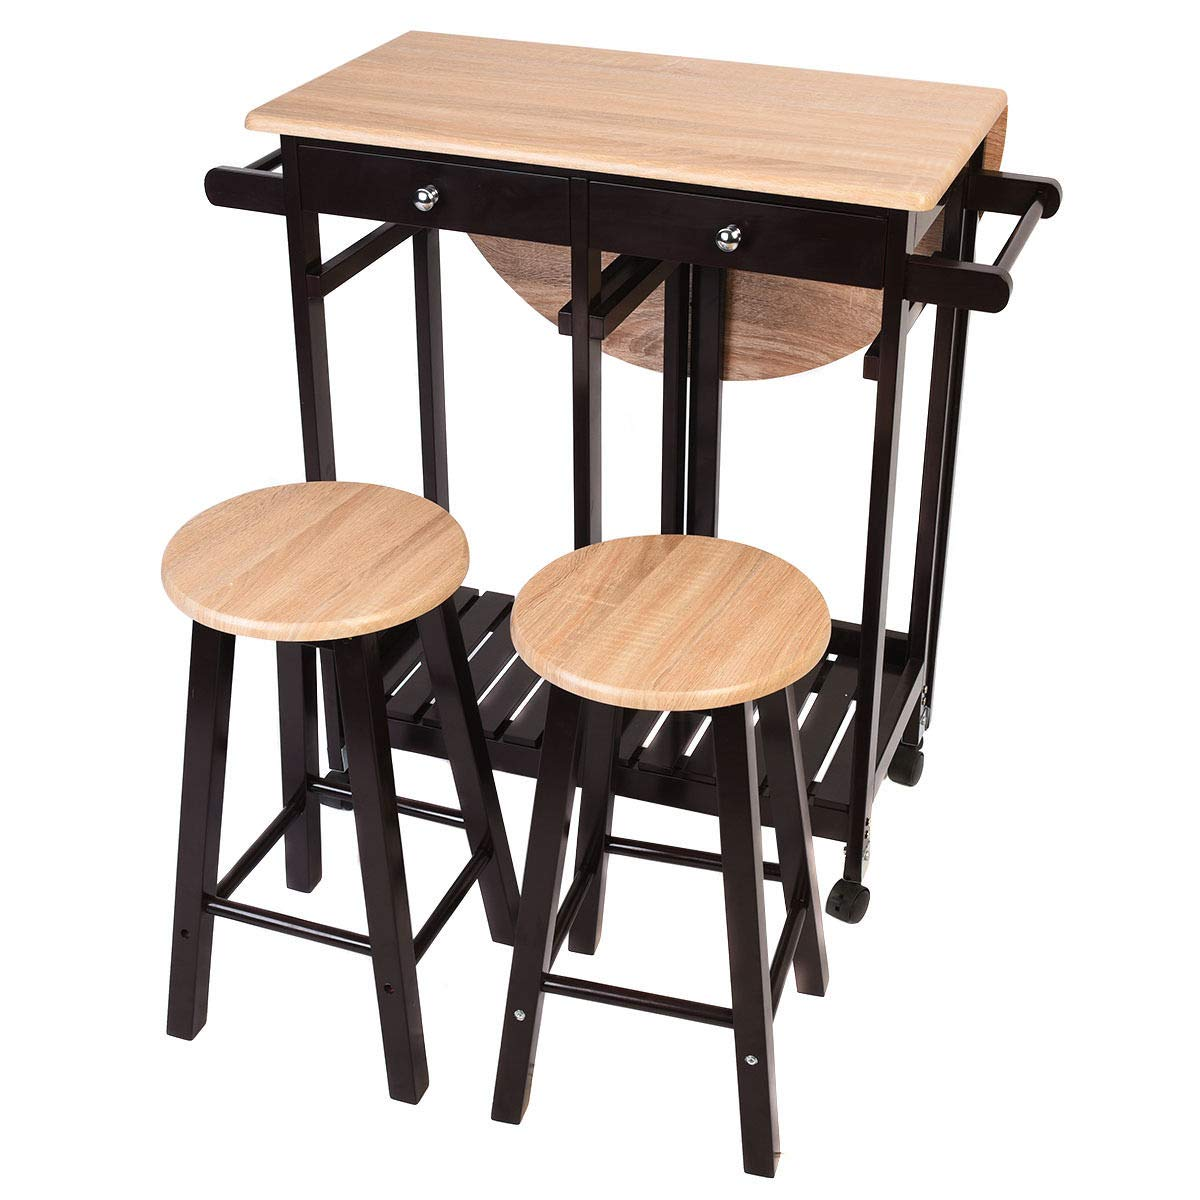 3 Piece Rolling Kitchen Island Breakfast Set, Drop Leaf Table 2 Stools, 2 Storage Drawers, Saves Space, Ideal Small Apartment, Dining Room, Two Tone Finish + Expert Guide